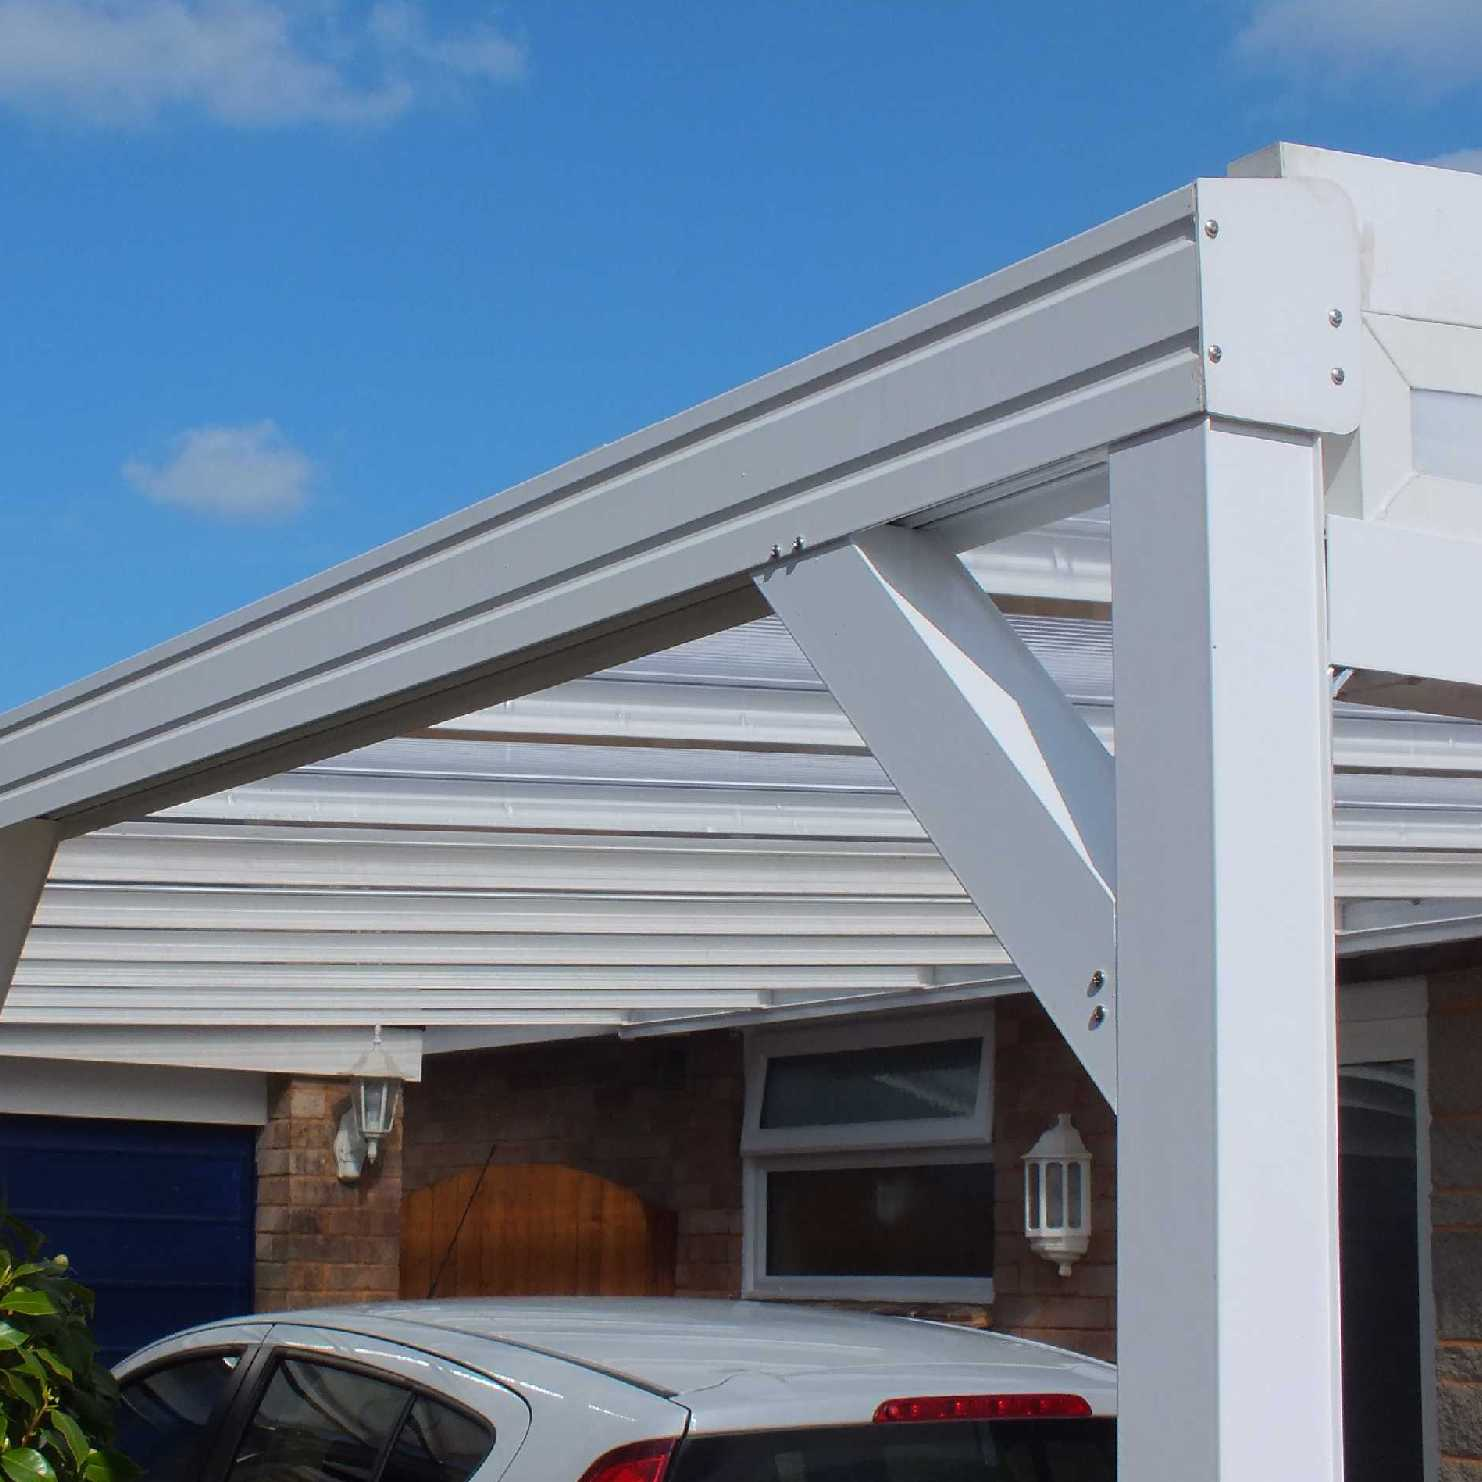 Great deals on Omega Smart White Lean-To Canopy with 16mm Polycarbonate Glazing - 6.3m (W) x 3.5m (P), (4) Supporting Posts